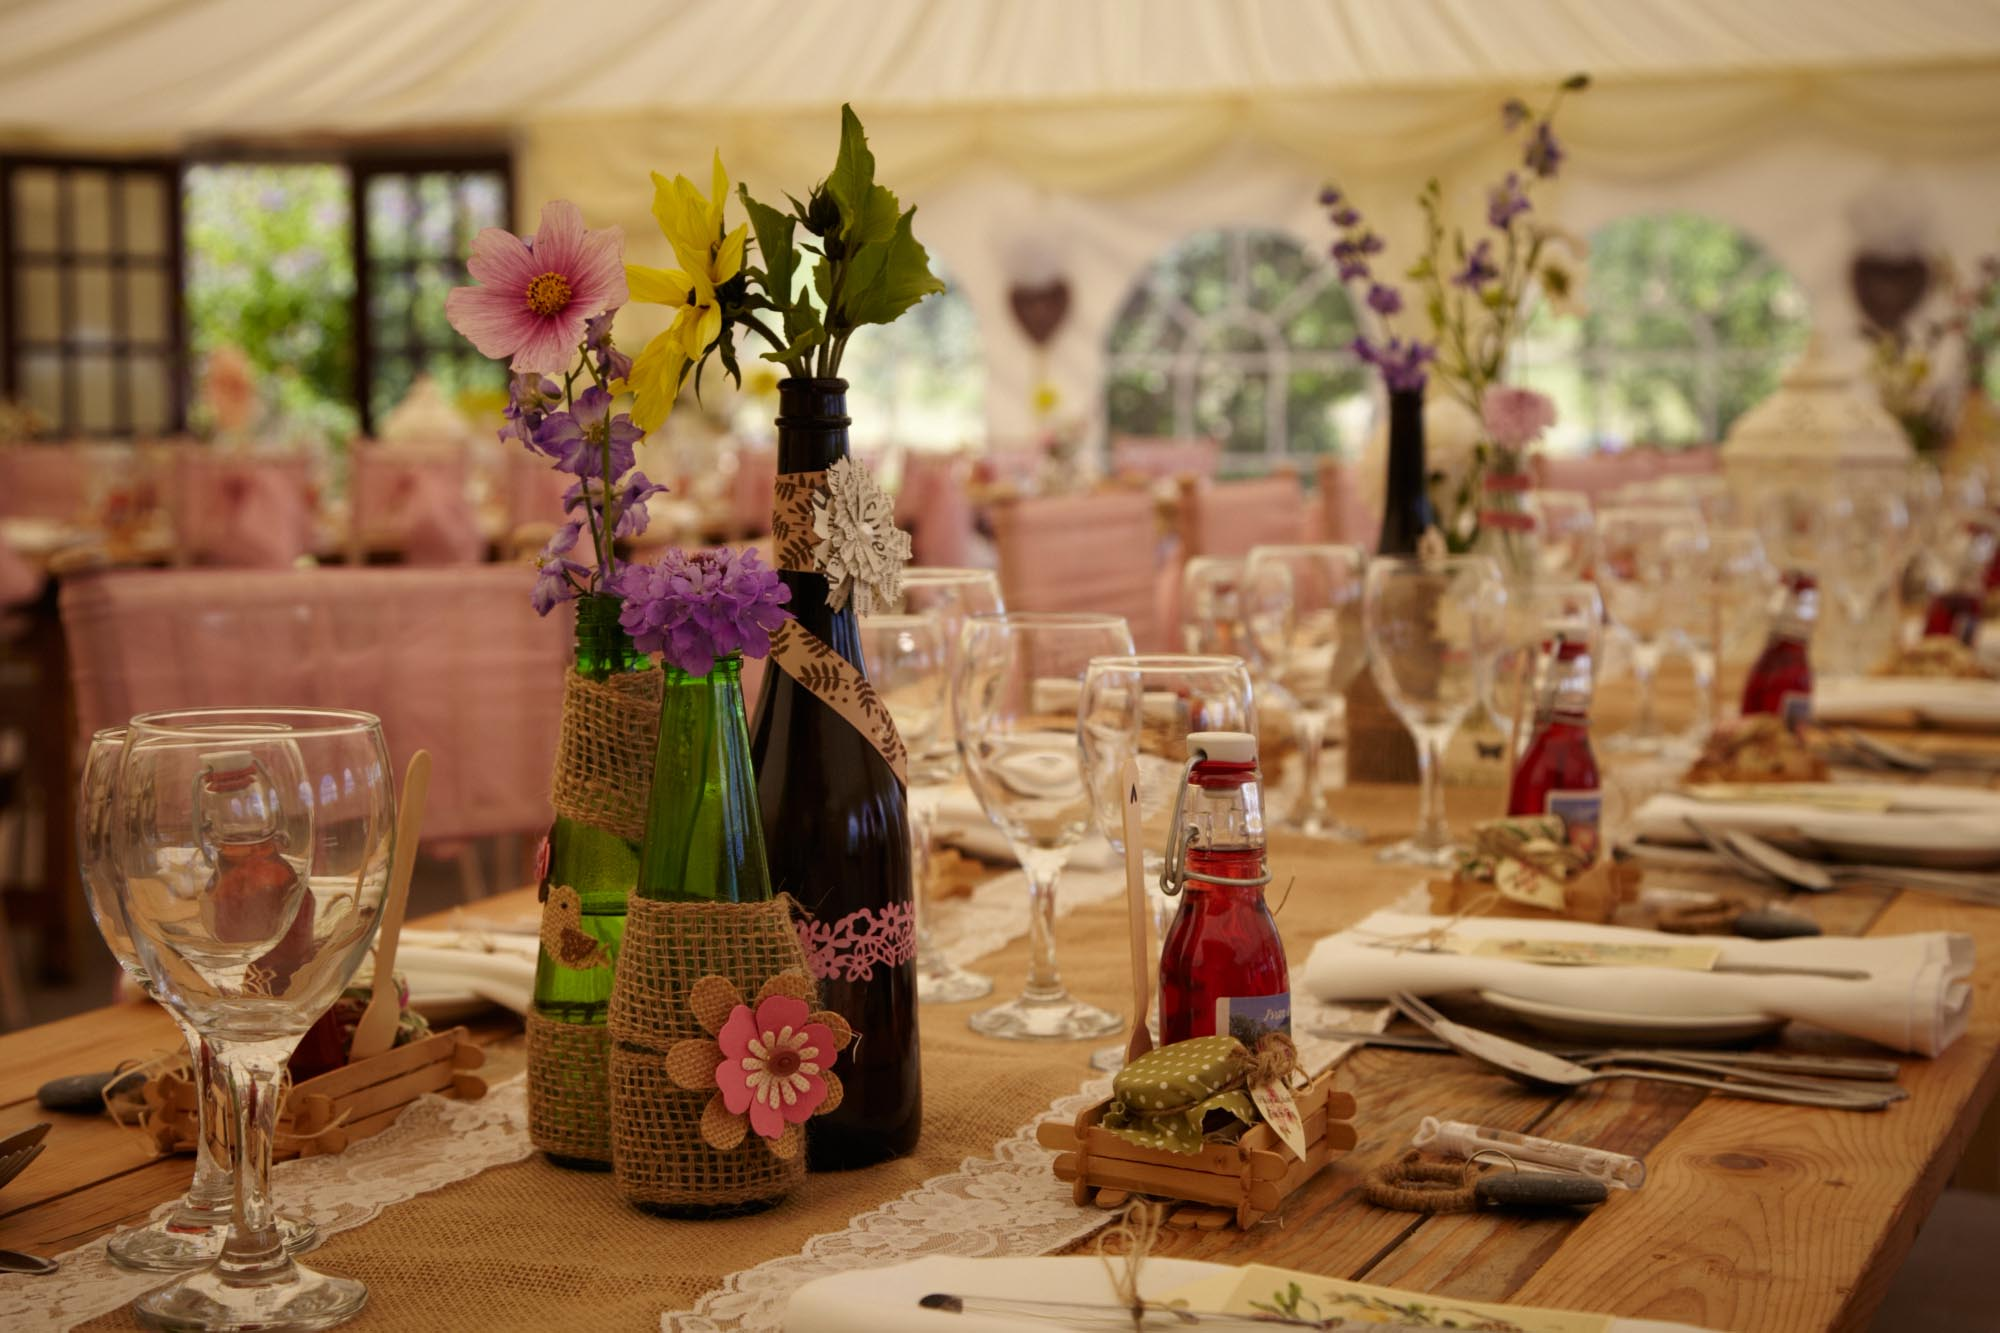 Wedding Reception Table Arrangement at Huntstile Farm